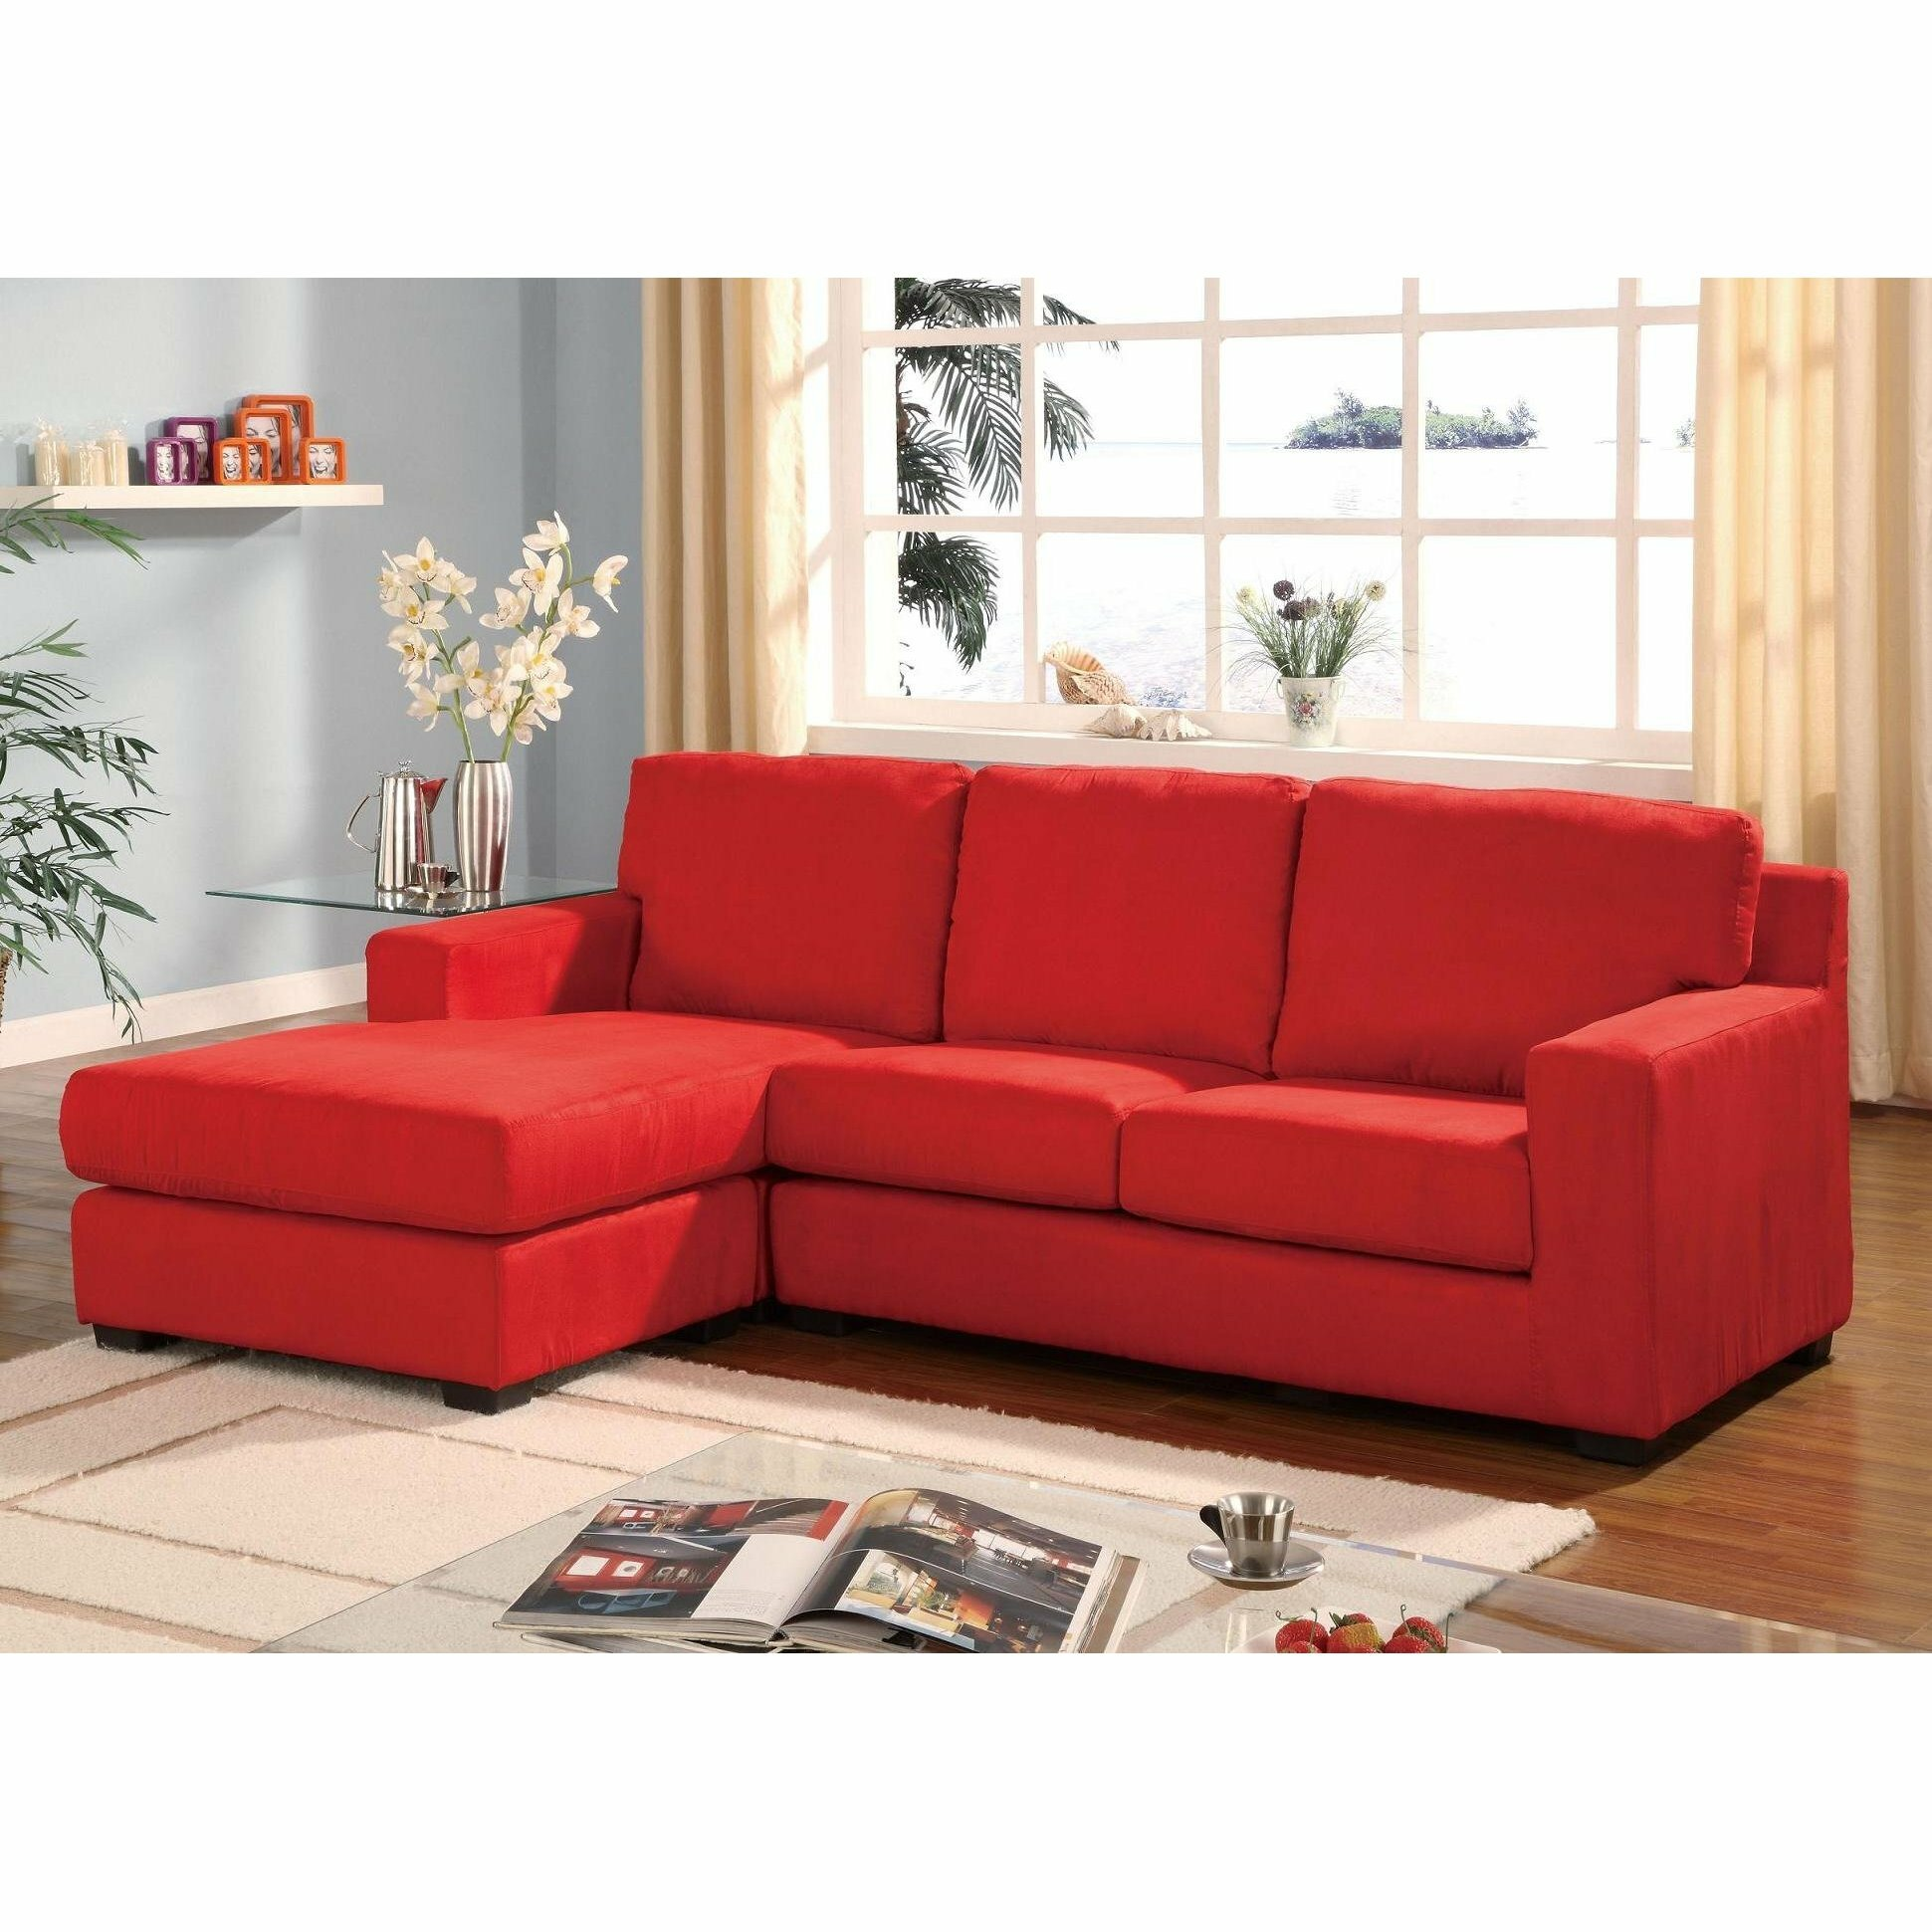 Sofas Red Sectional Sofa